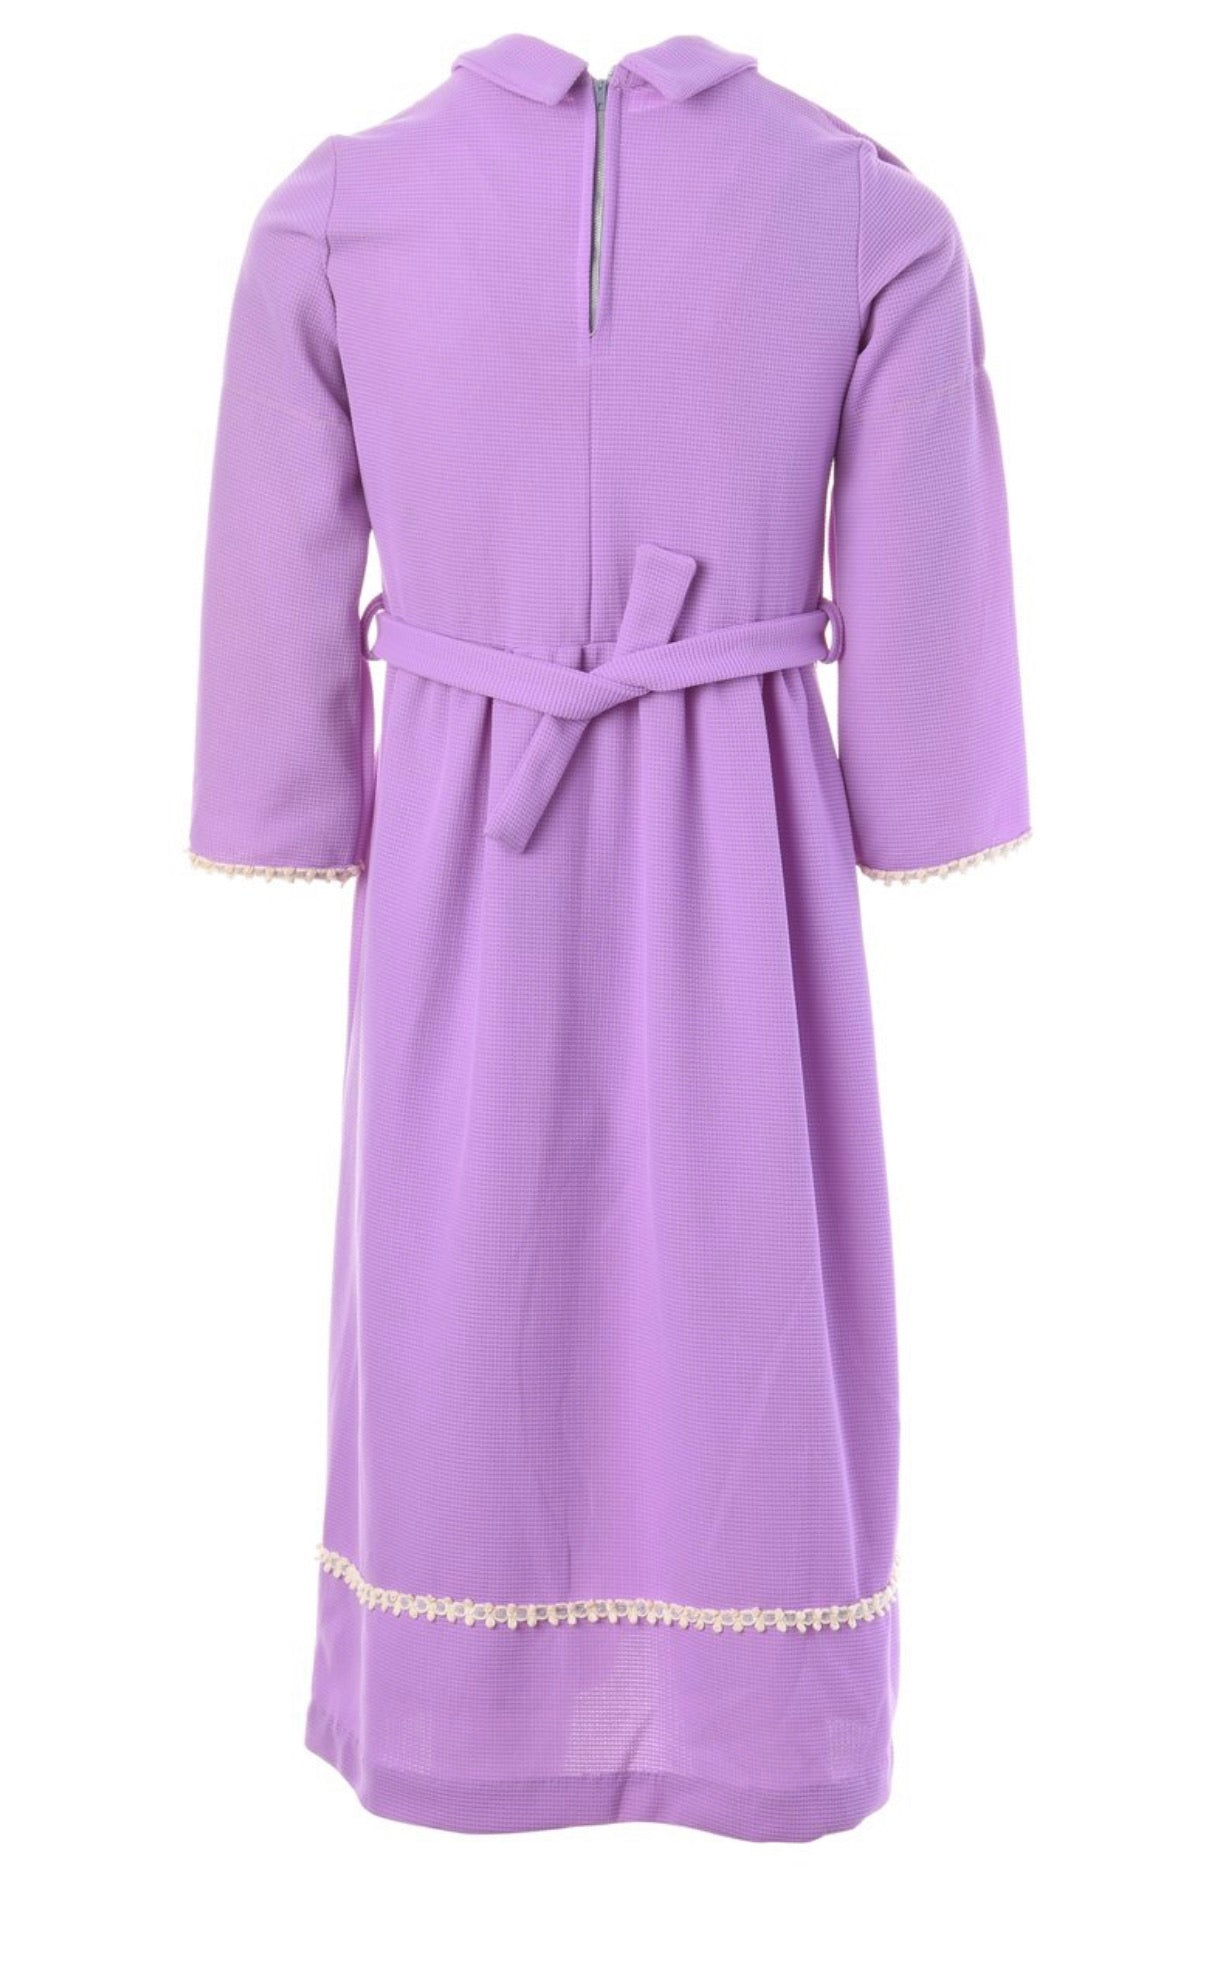 The Leyla Lilac pastel Mini Dress